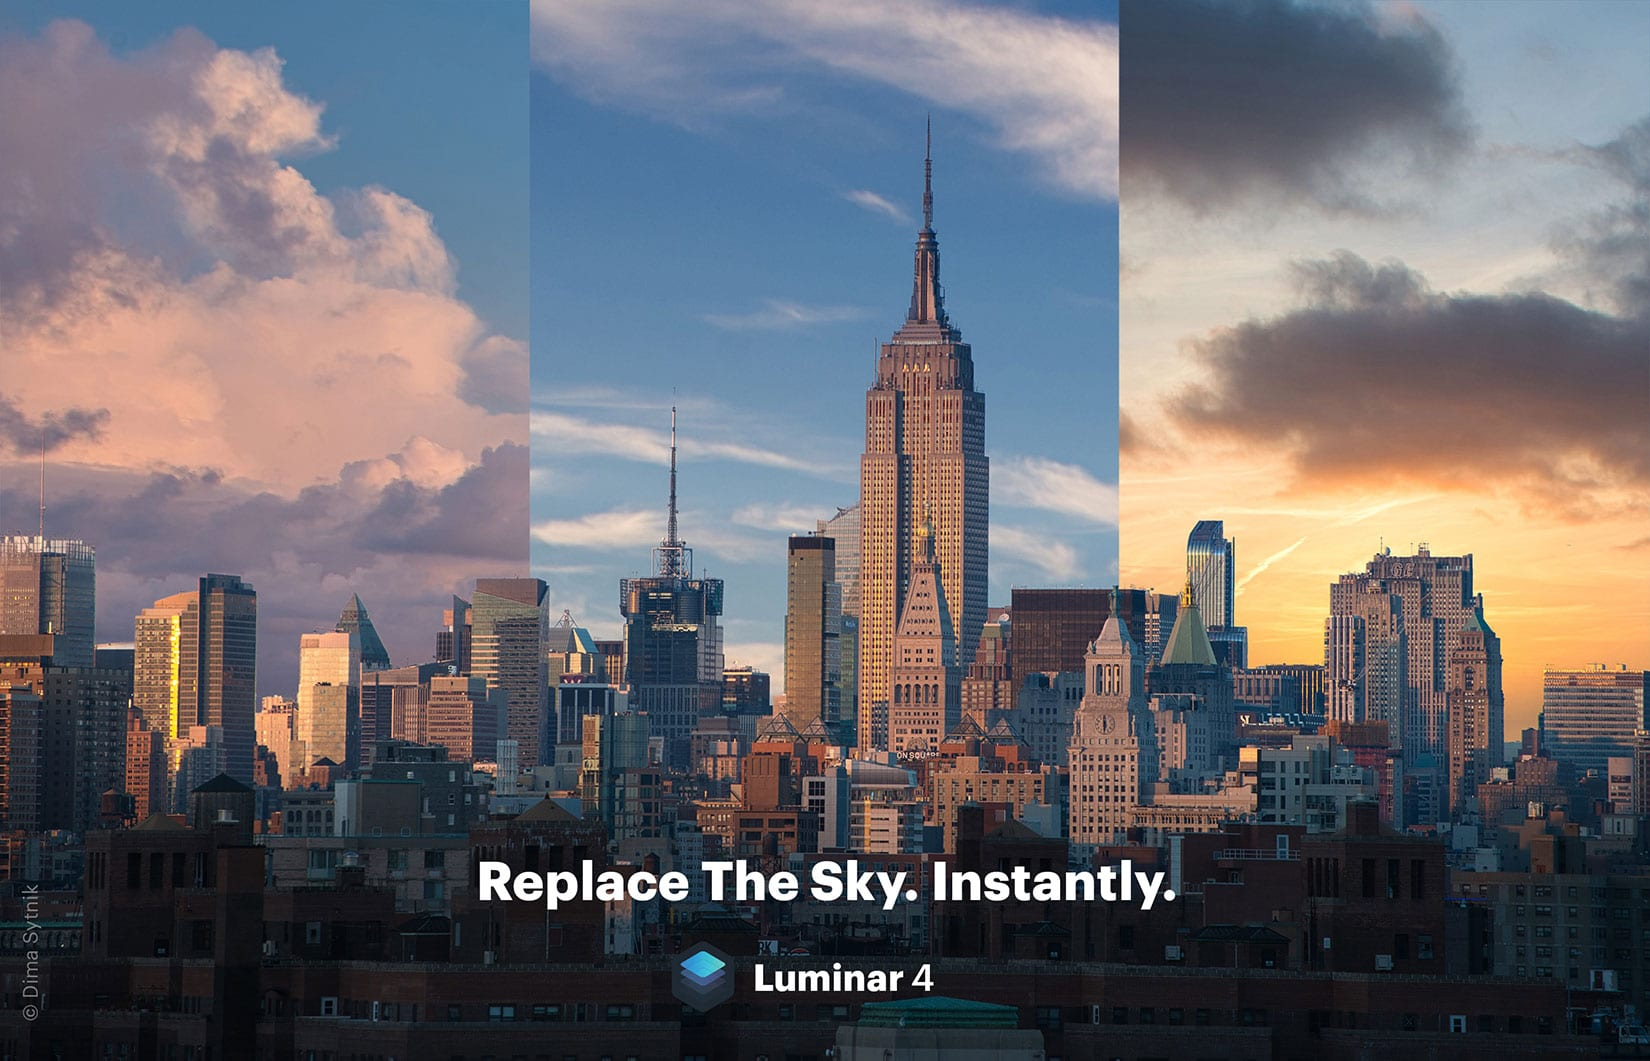 sky replacement tool in Luminar 4